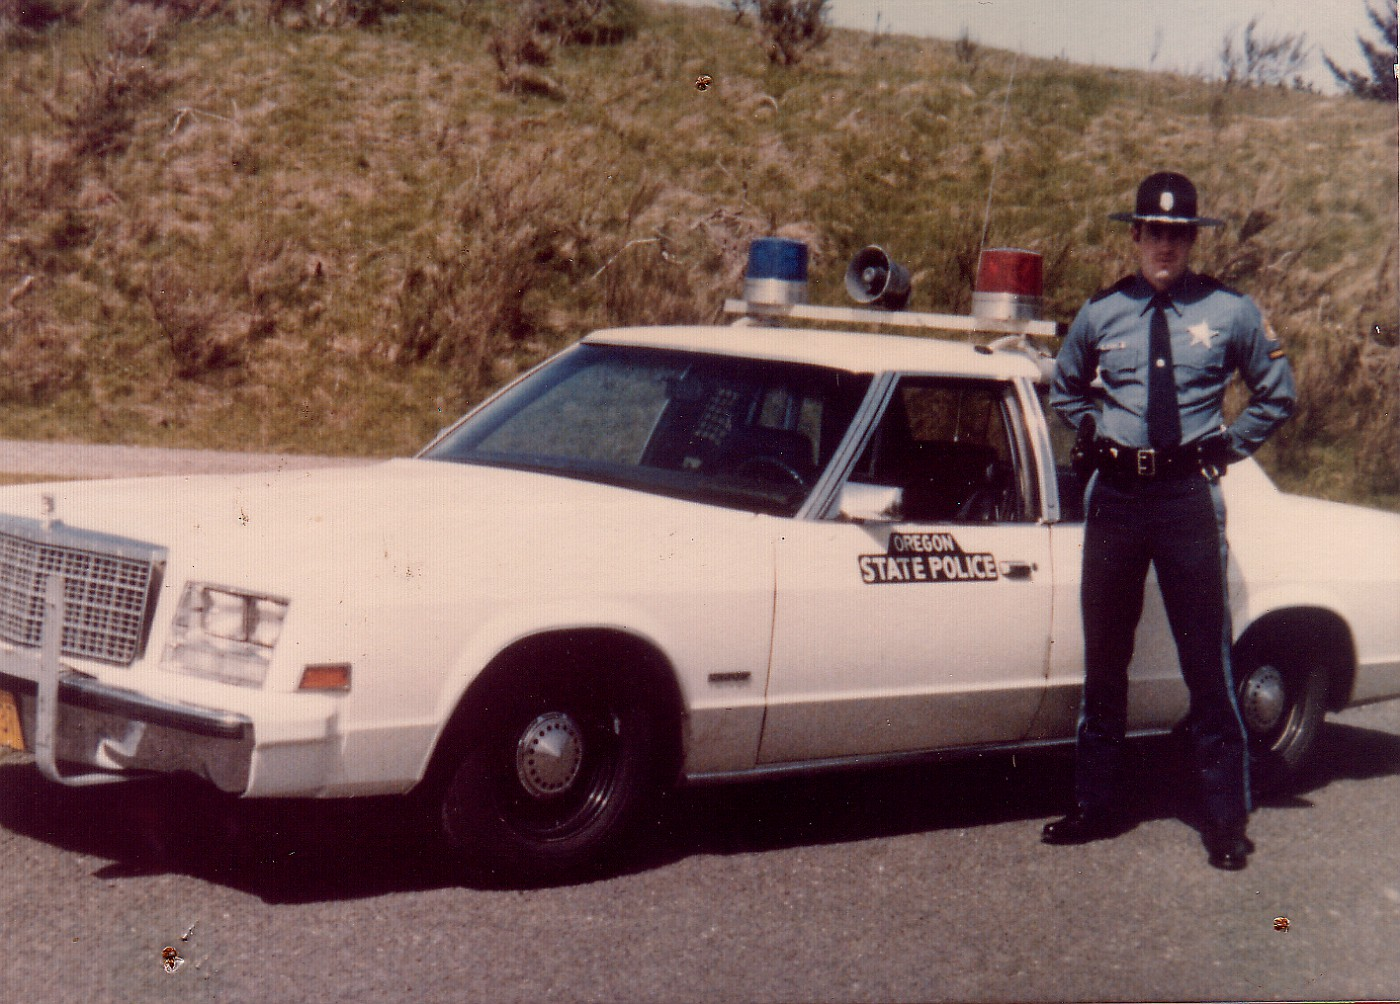 bel air police car with Oregon on Nicknames For White Cars additionally Surete Du Quebec Les Vieilles Voitures De Police additionally Chevrolet Diecast Cars also T1485p75 Vielles Photos De Voitures De Police Et Ambulance Au Quebec together with Car Wallpapers Need For Speed.